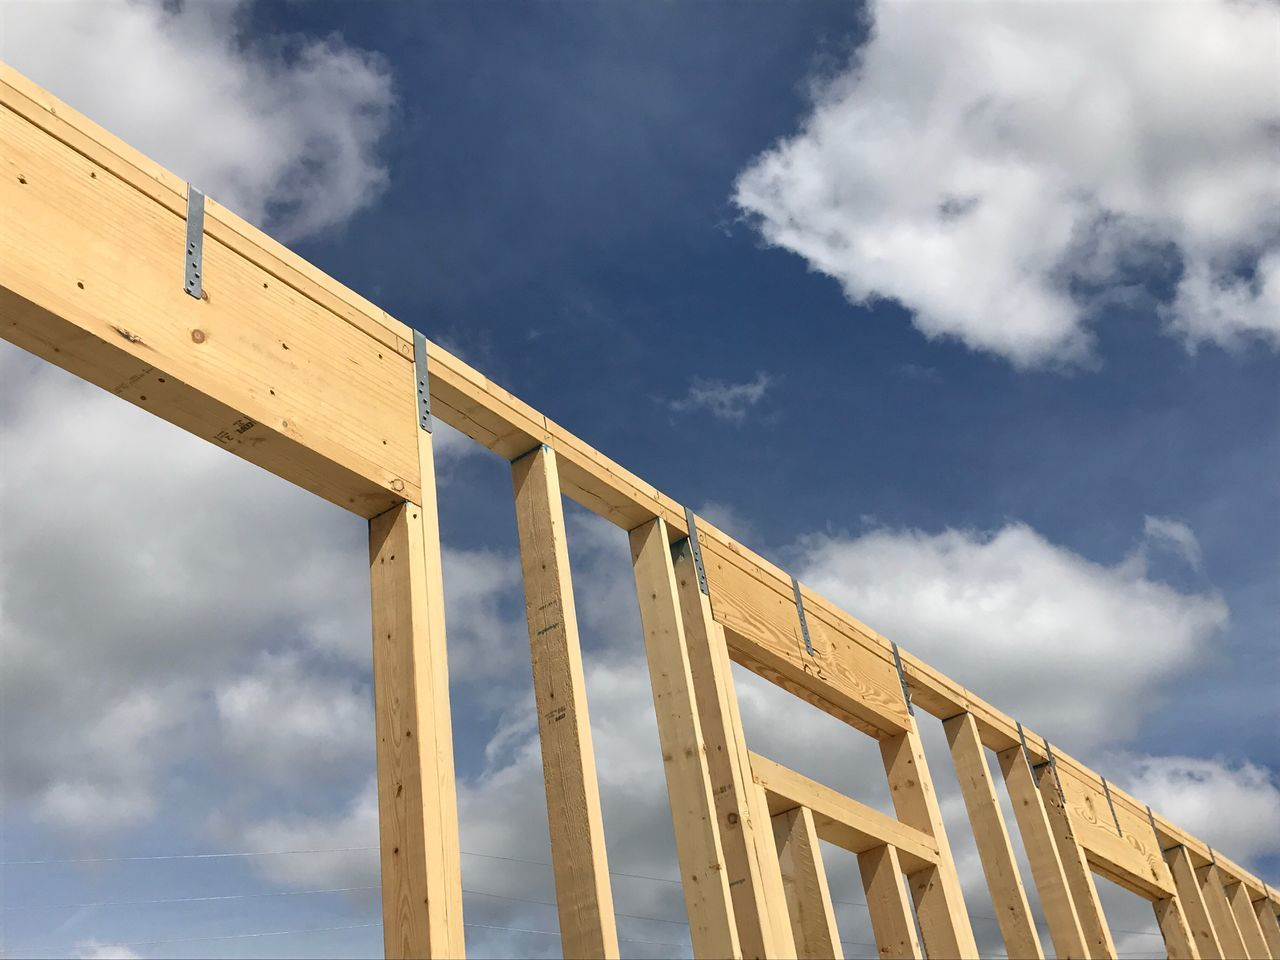 another New Home Being Built by Volunteers Sky Cloud - Sky Built Structure Architecture Low Angle View Day No People Outdoors